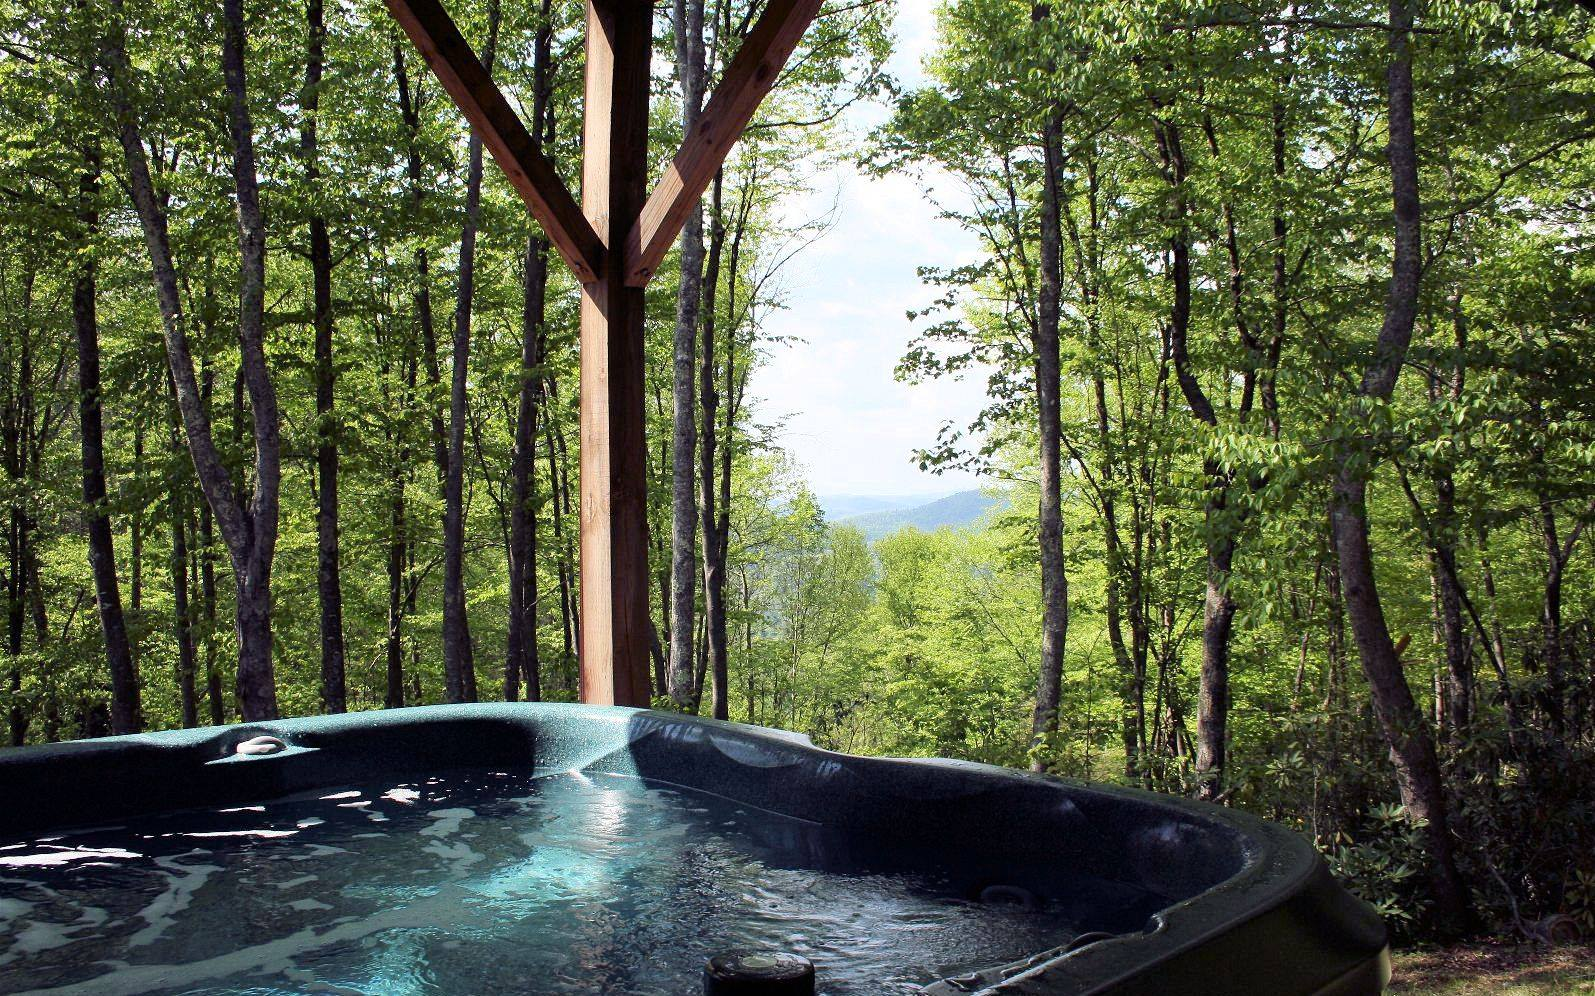 Blue Ridge Mountain Rentals Boone North Carolina Property Rental with Hot Tub